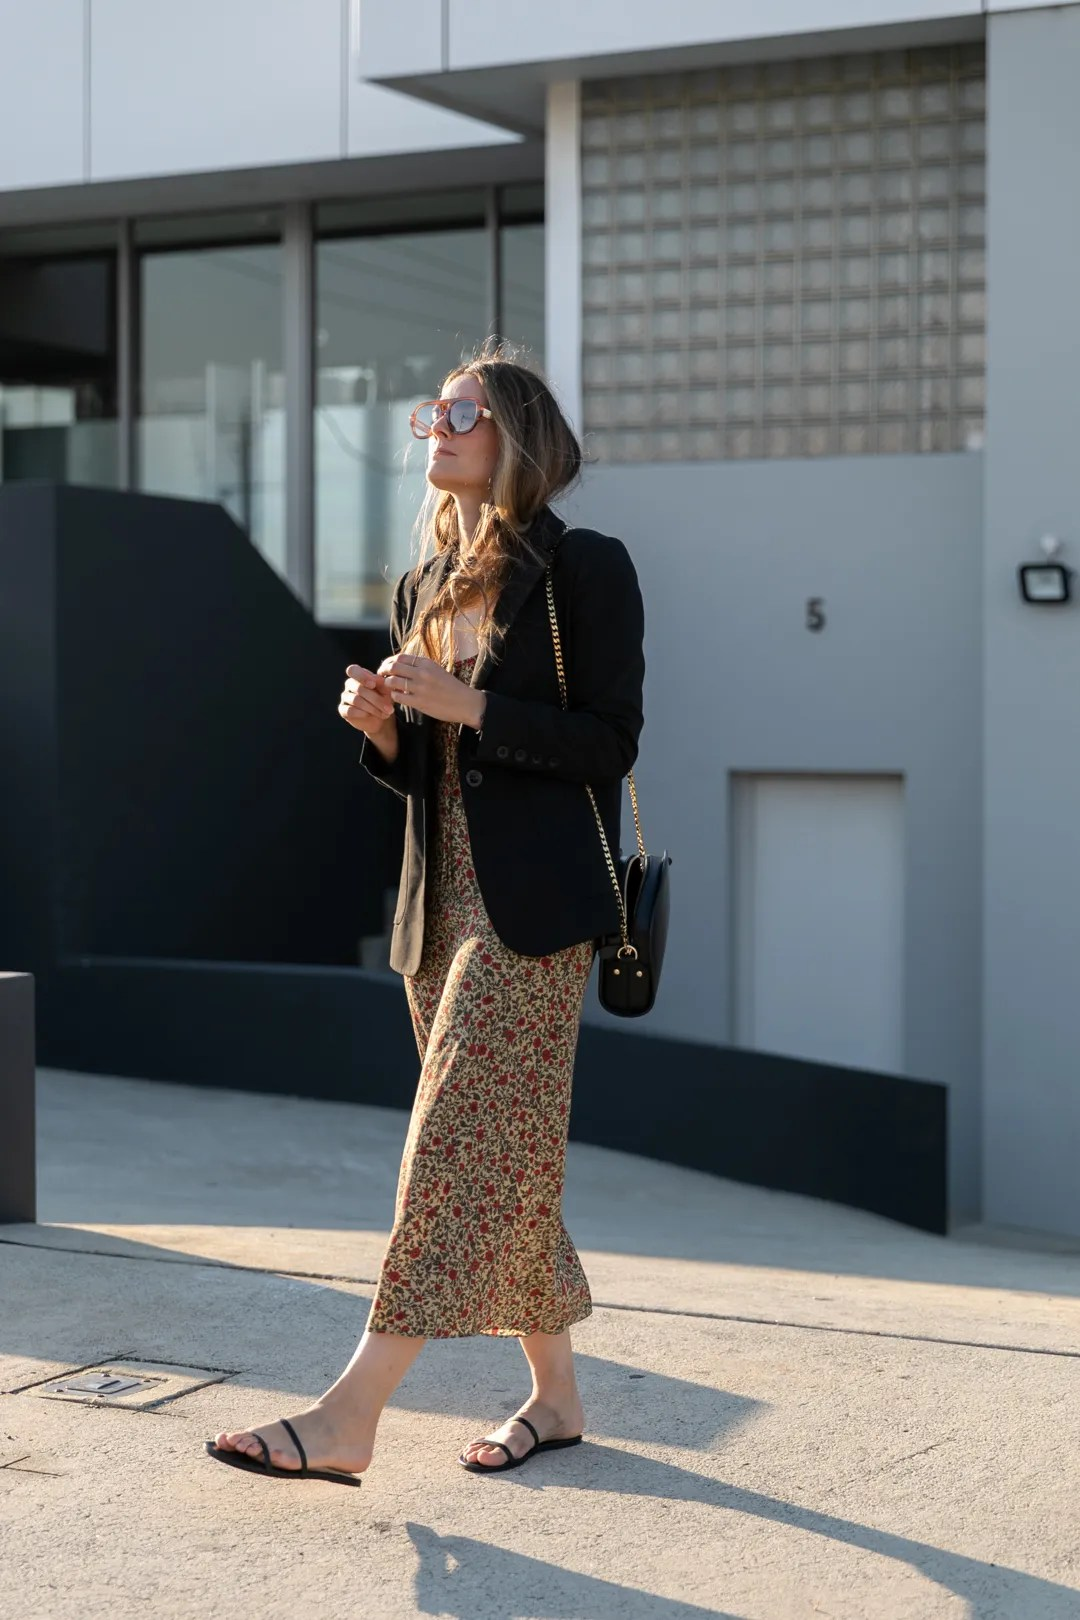 Midi dress with Tkees sandals and blazer